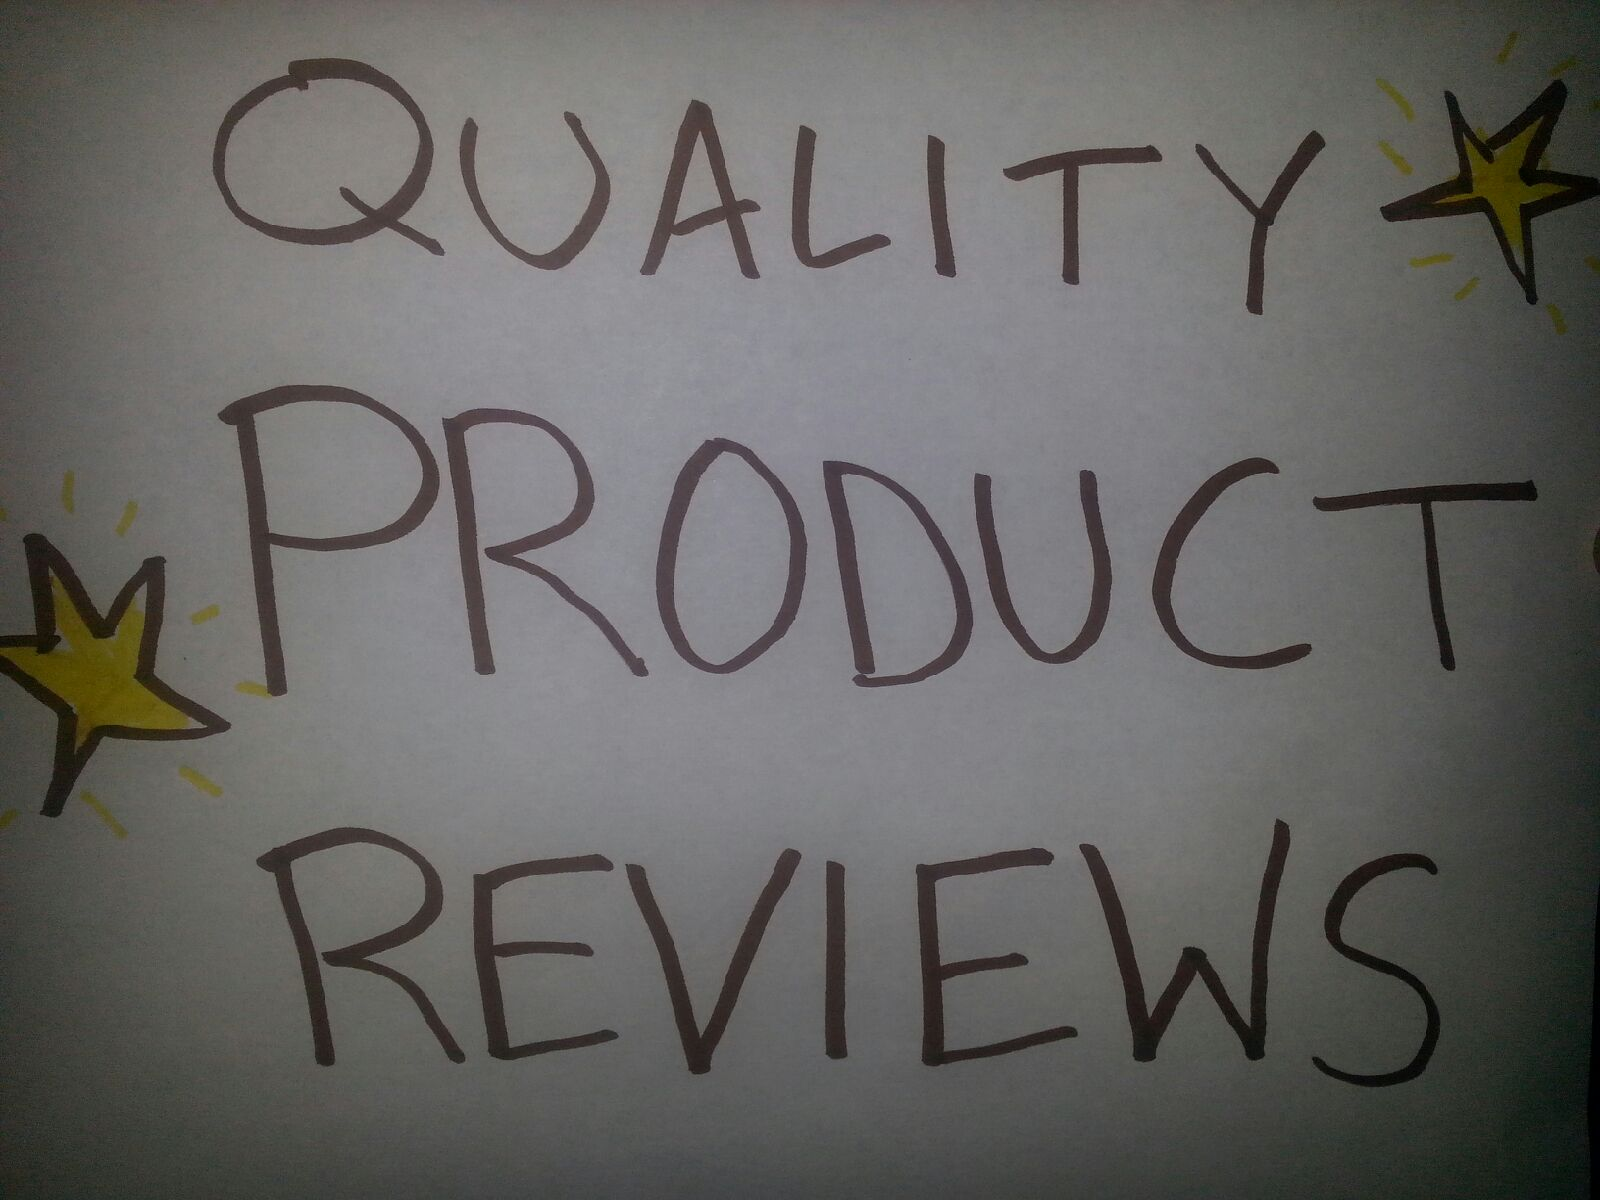 give you a quality product review